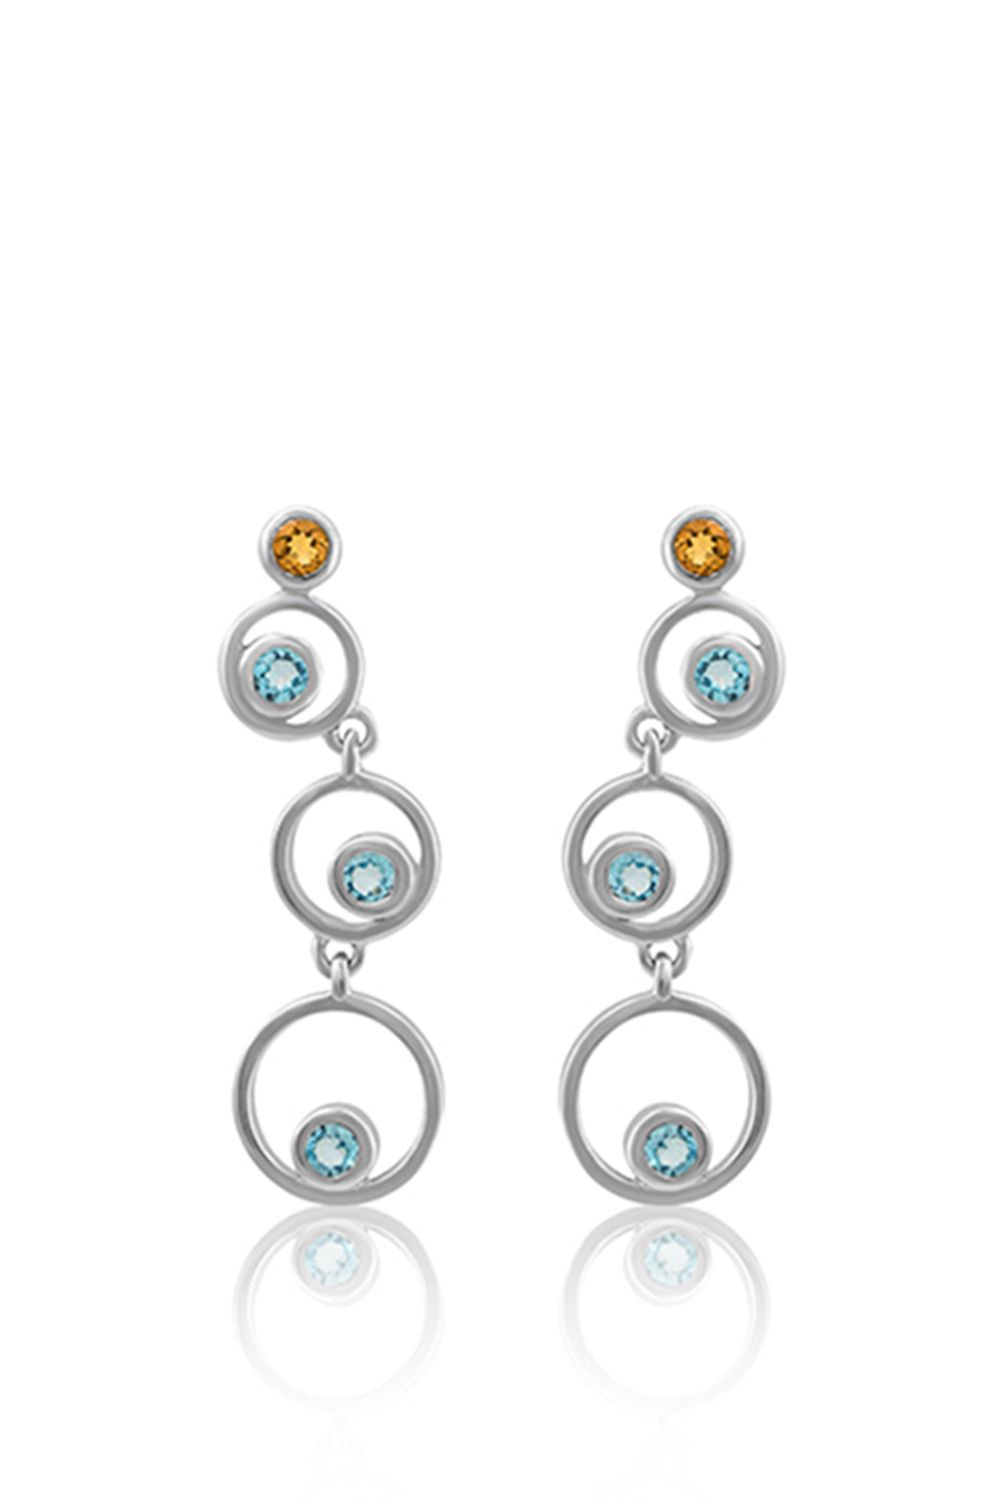 Jewelry photo retouching services is one of the most crucial photo editing service specially designed for product image photographers, jewelry business owners. #photoediting #retouching #jewelryretouching #jewelery #earring #silver #stone